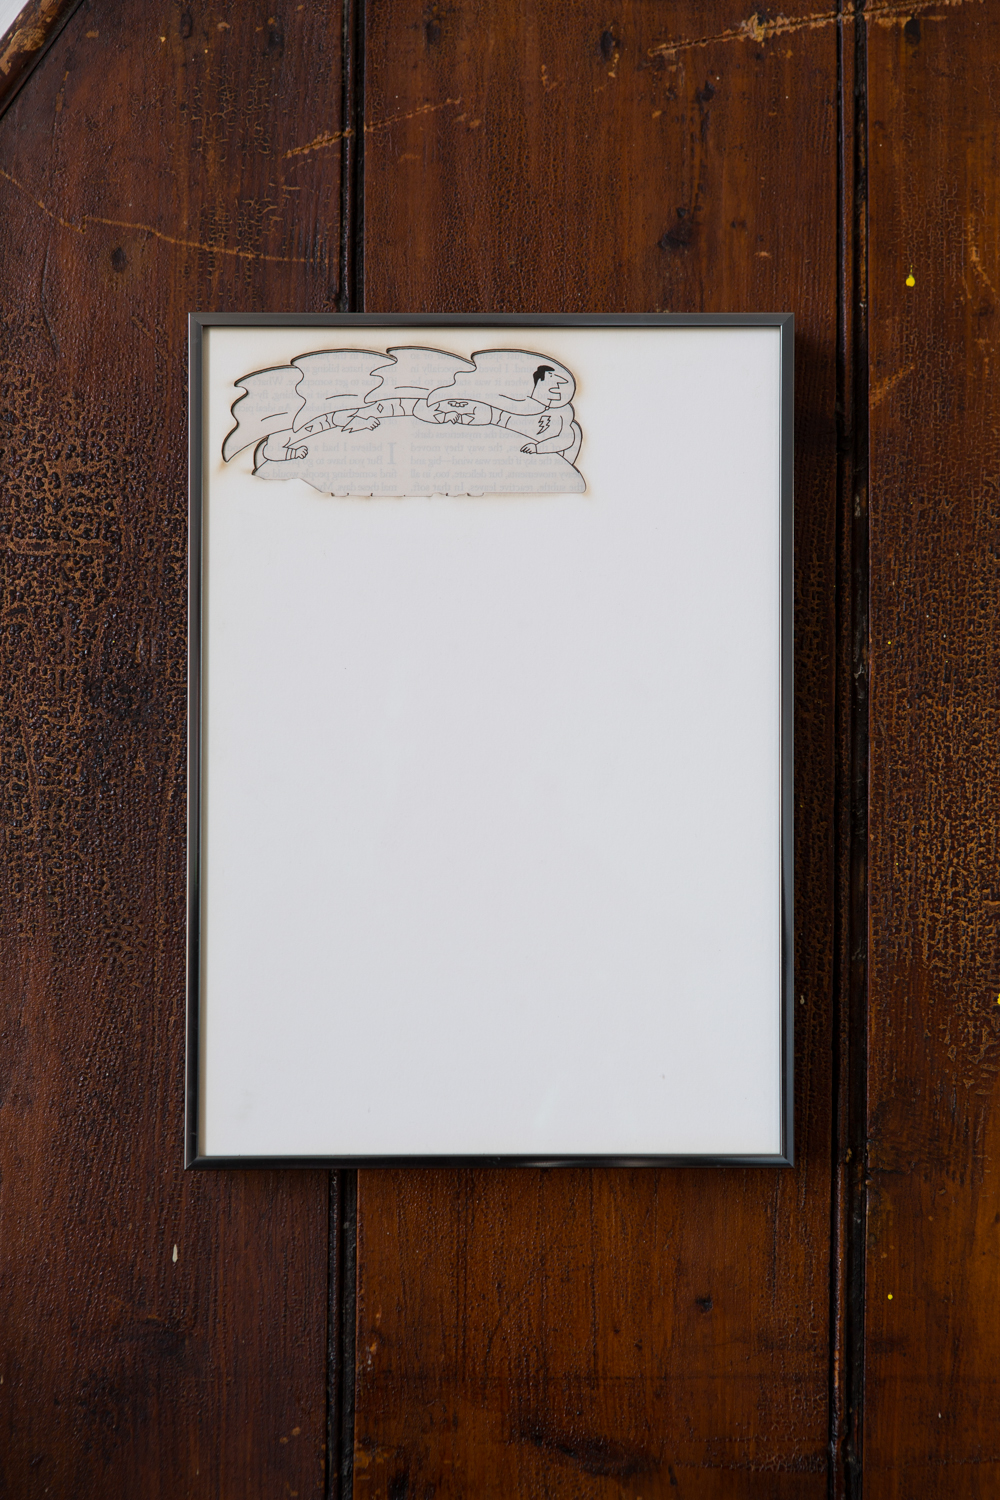 Zachary Susskind  (CONFERENCE)   Artifact: Language Barrier (Johan Rudolf Huber) , 2014 Cotton and paper in artist frame 11 x 8 inches